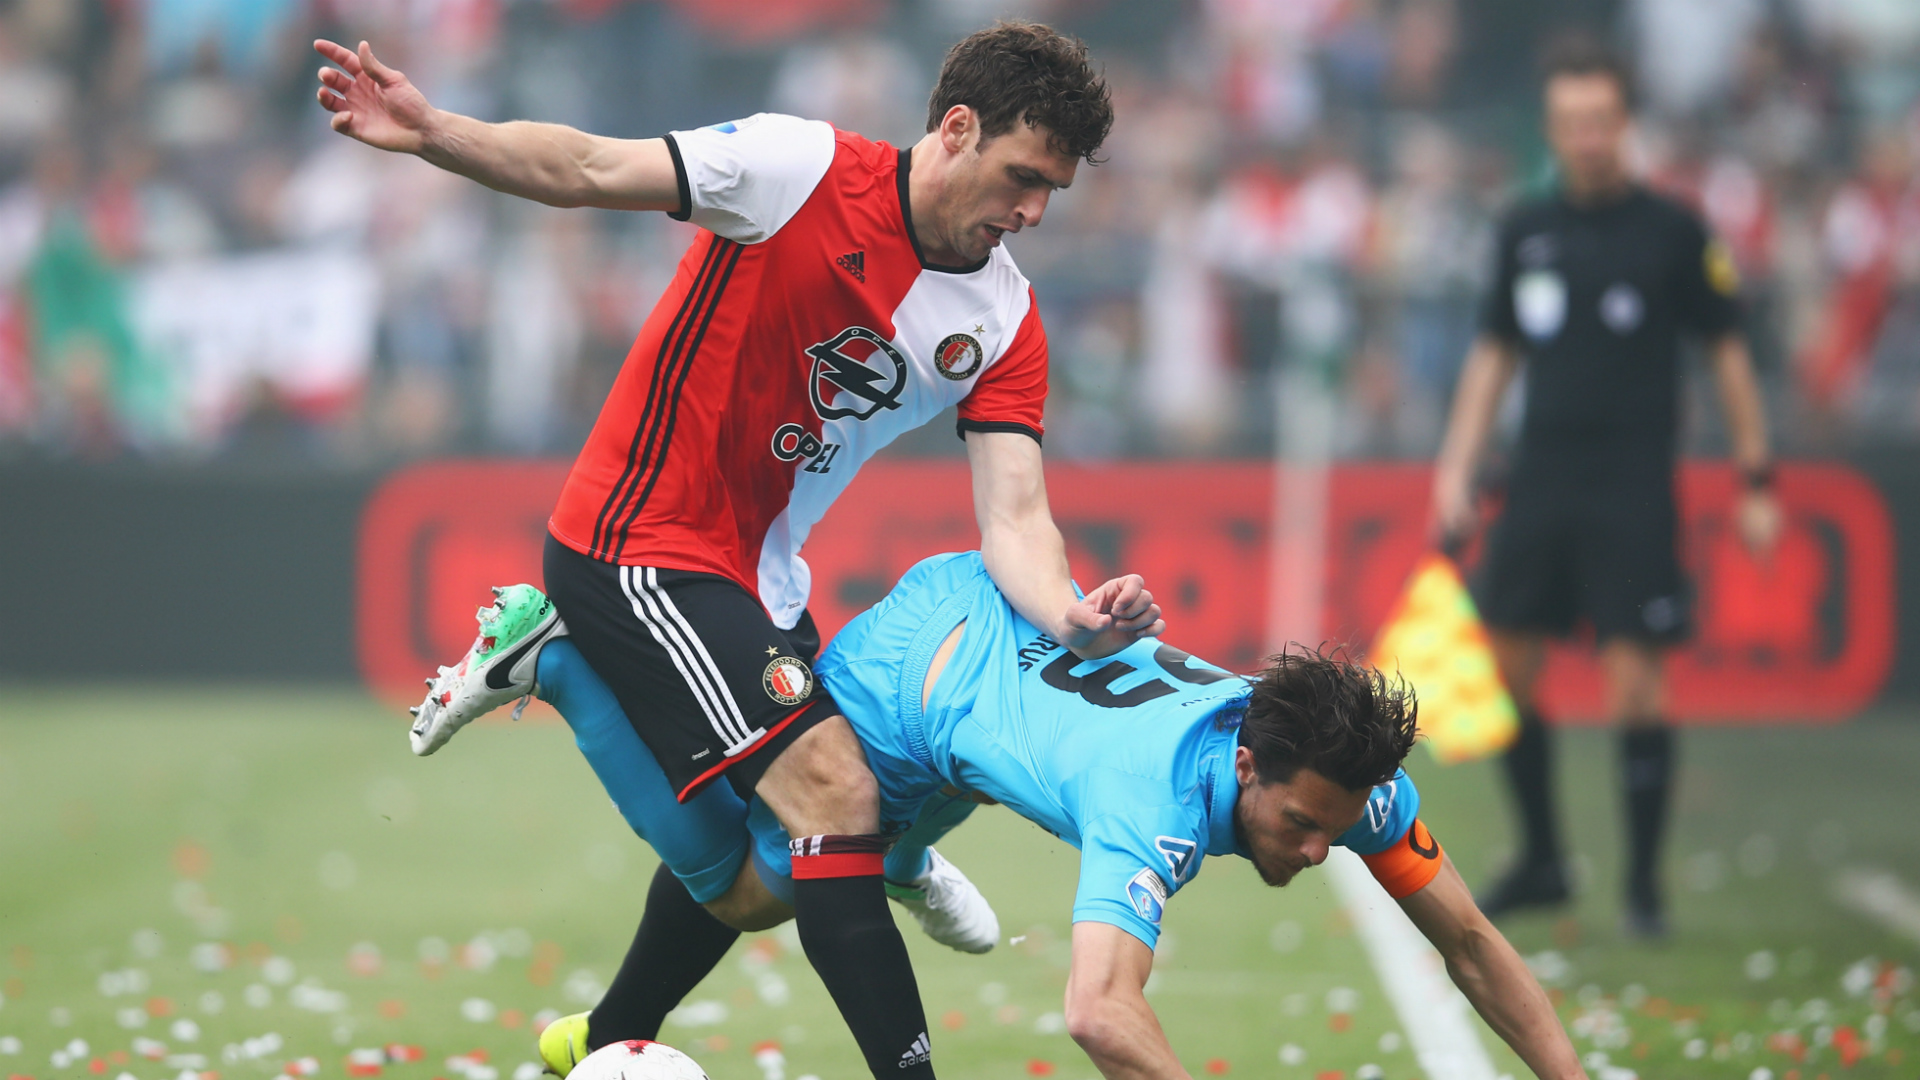 Dirk Kuyt hat-trick secures title for Feyenoord